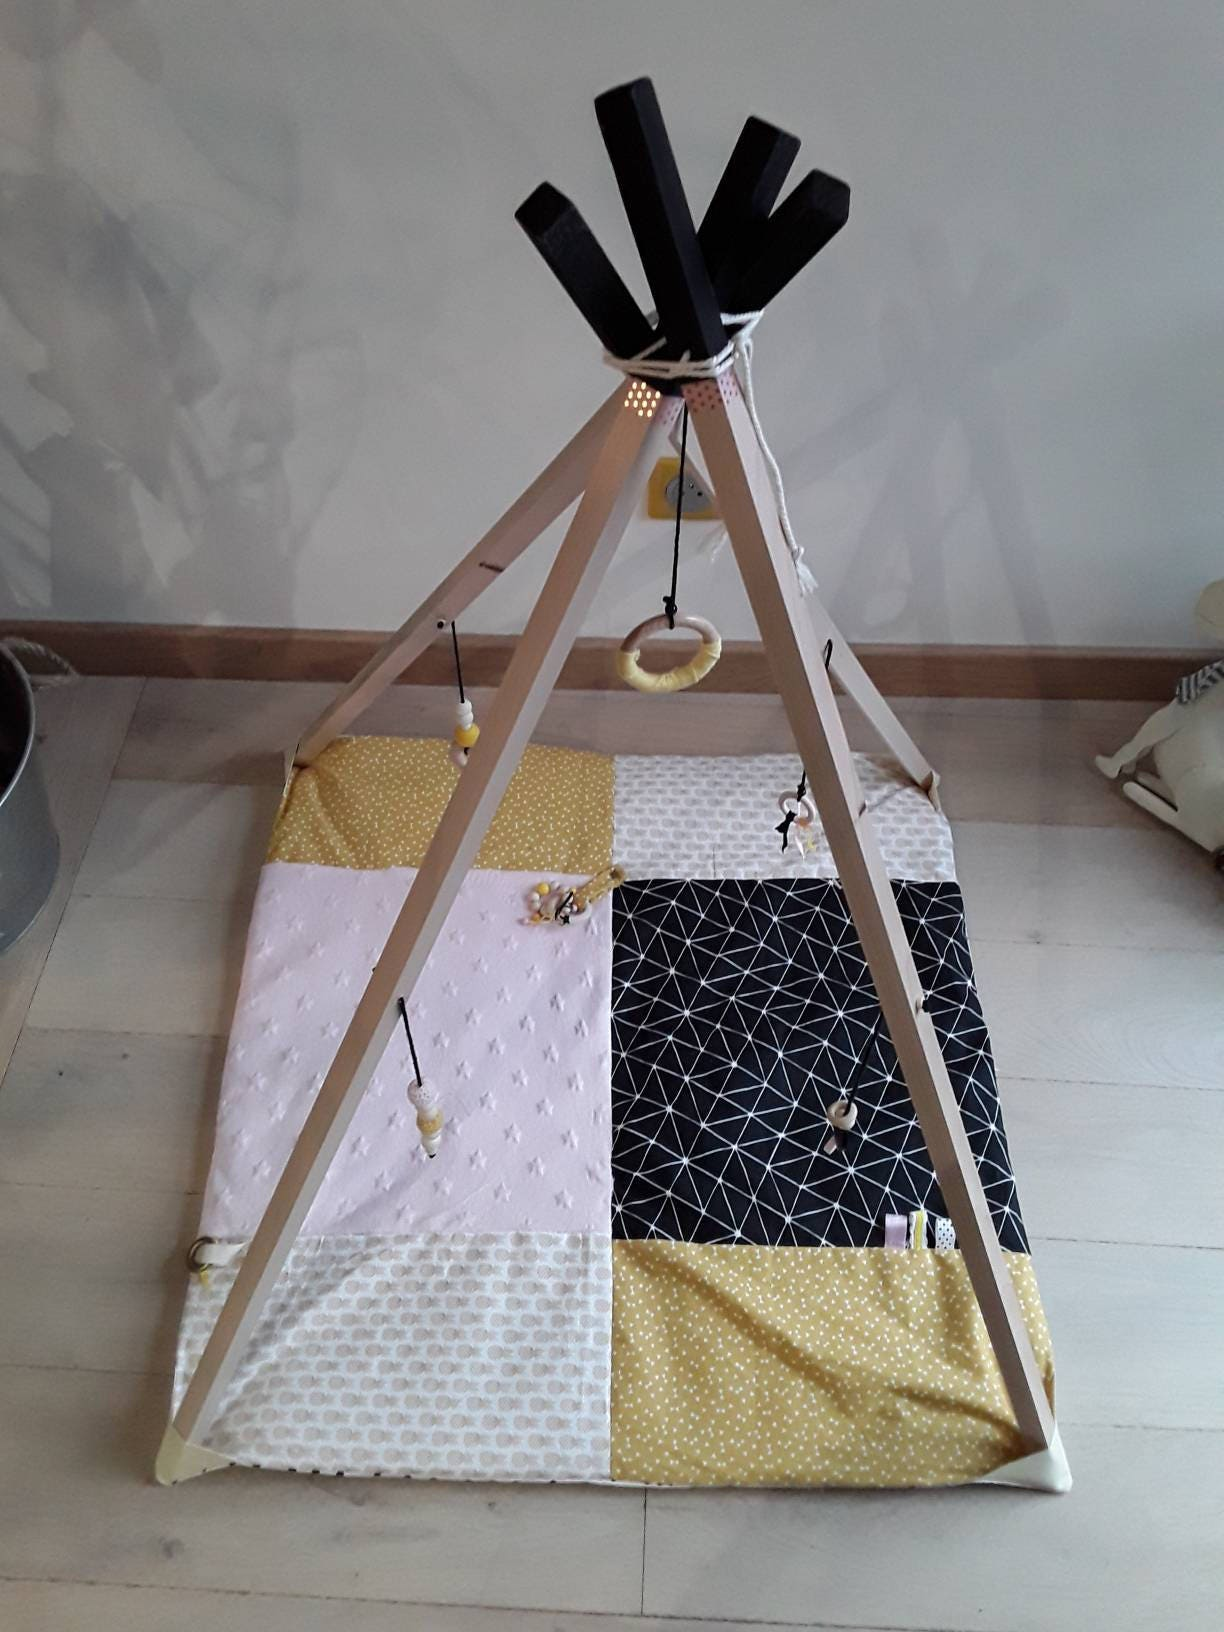 tapis d 39 veil b b fille sensoriel transformable en tipi arche en bois brut hochets naturels. Black Bedroom Furniture Sets. Home Design Ideas